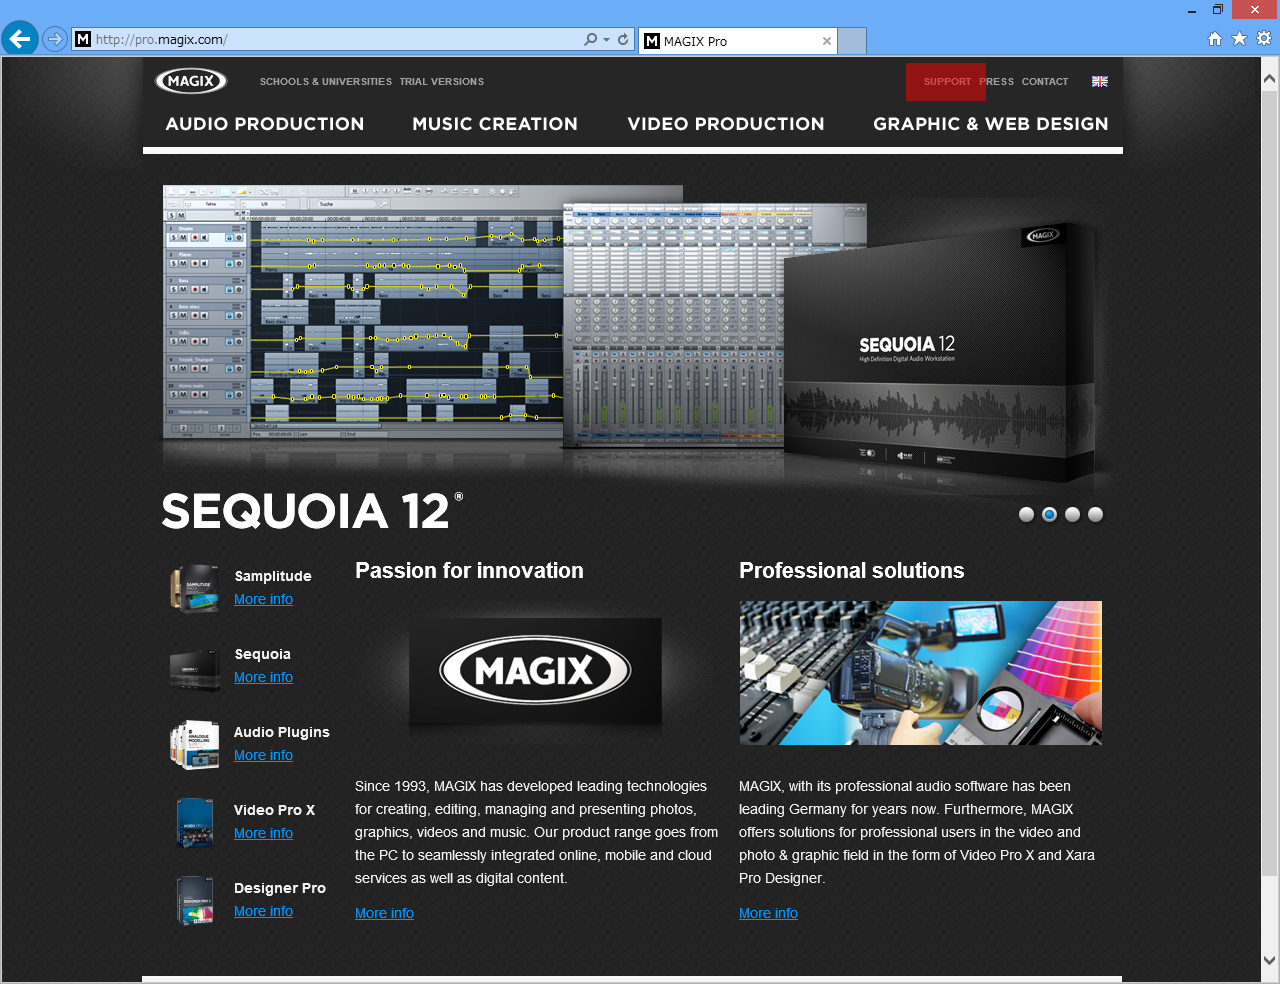 magix independence pro serial number